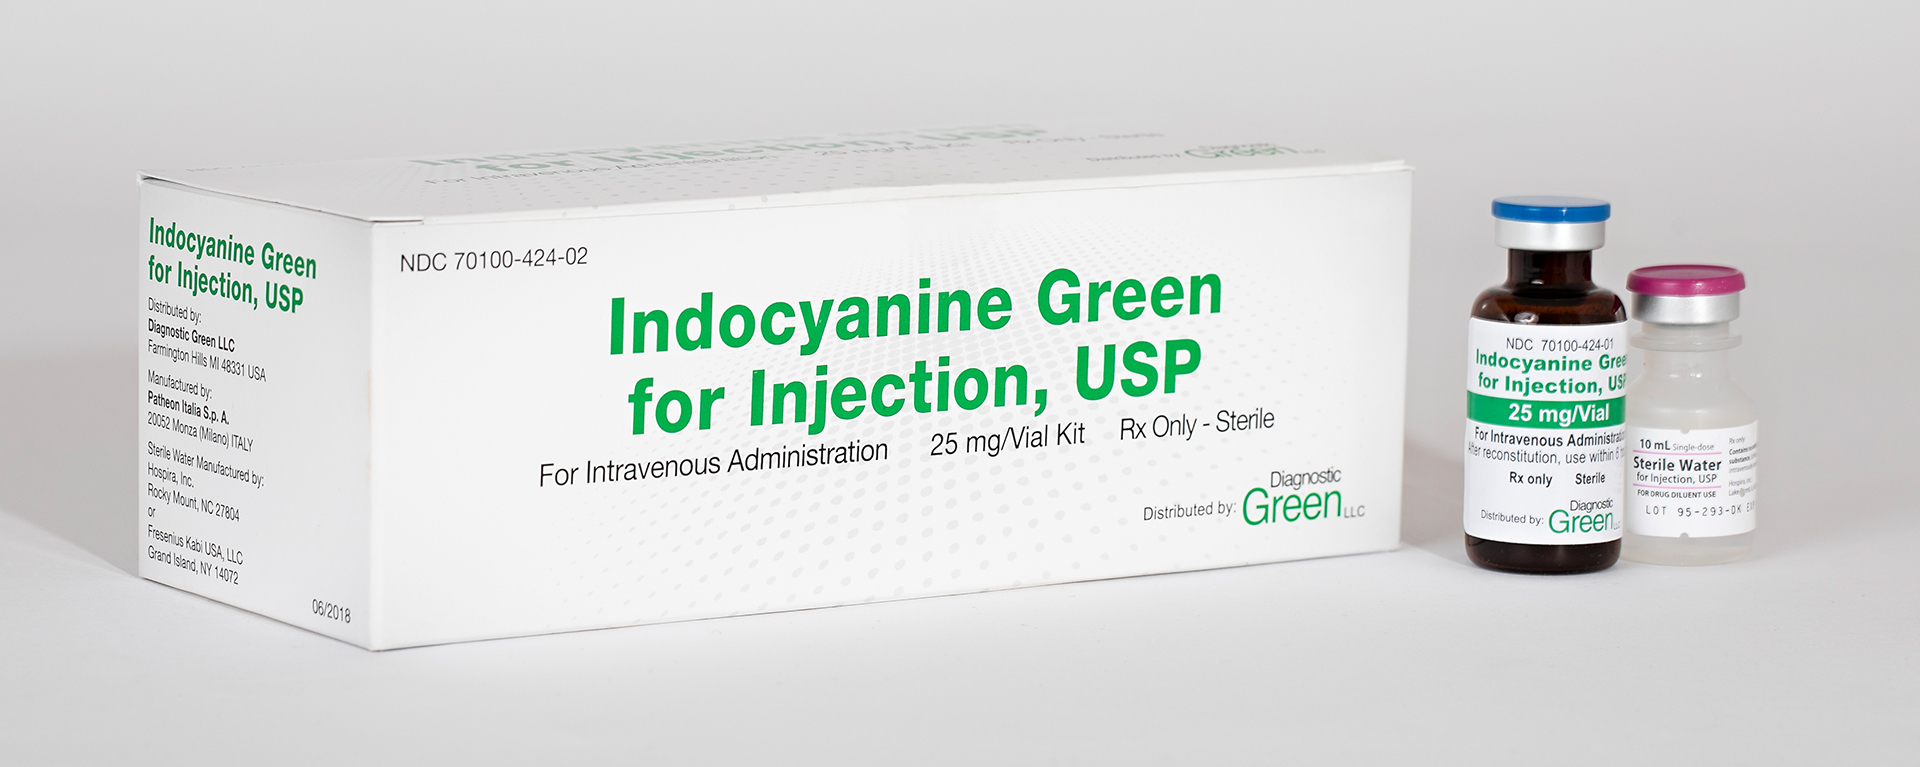 Indocyanine Green for Injection USP